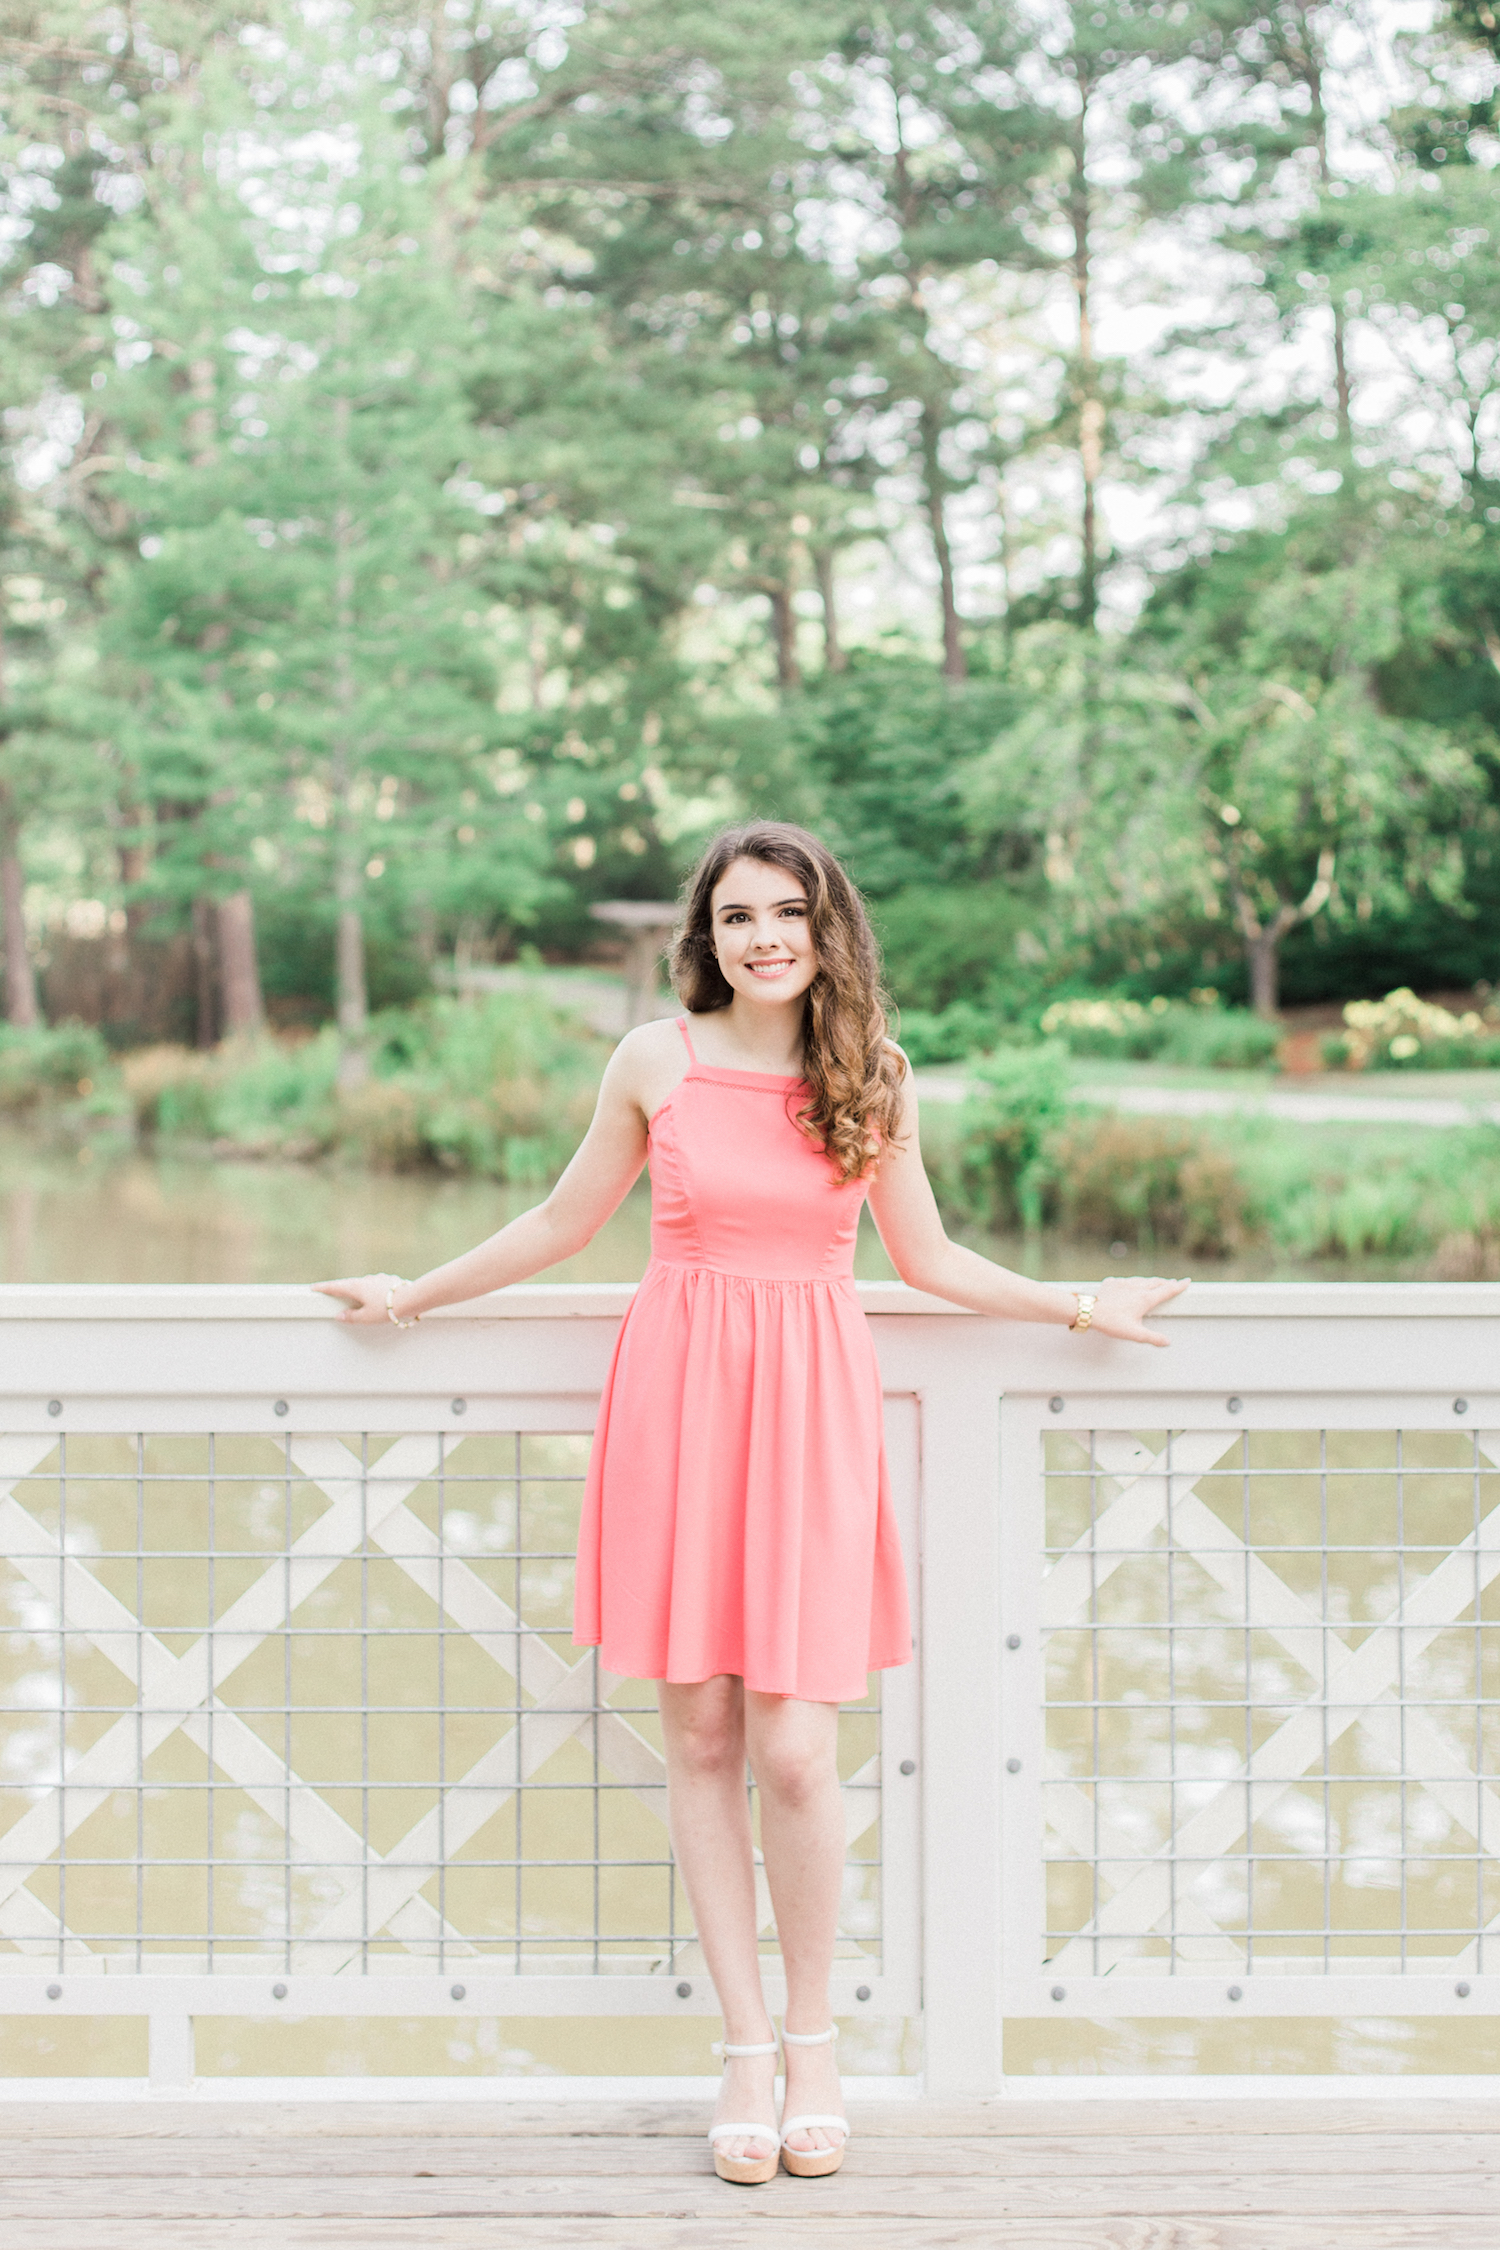 Summer time high school senior session at Vine Mansion Park by Kesia Marie Photography. Featuring feminine, garden details. Senior photos on a white bridge.